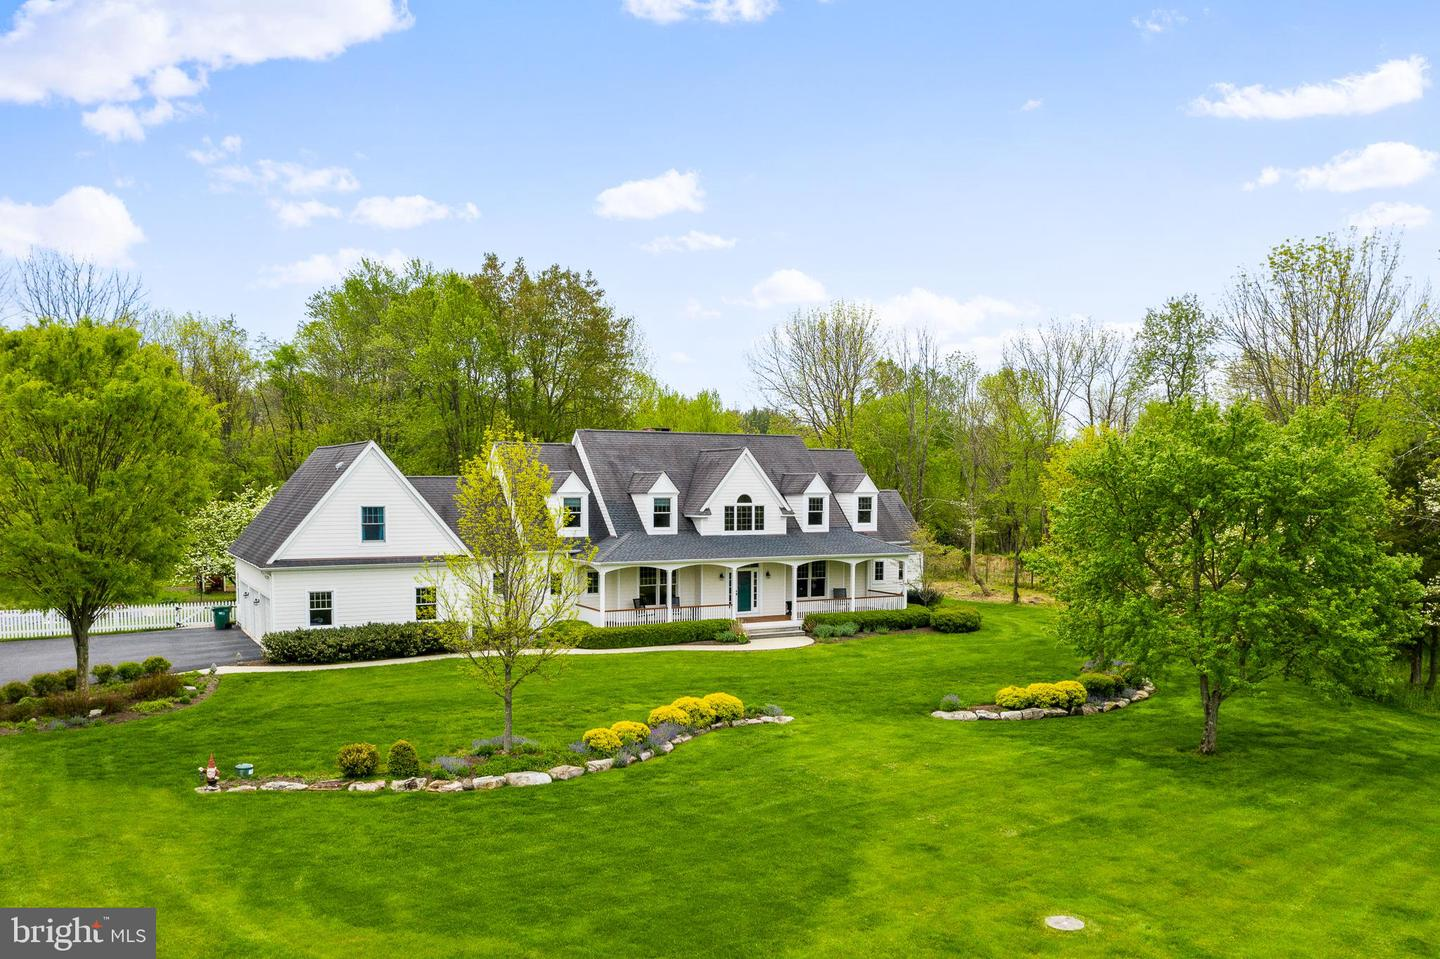 6230 SAW MILL RD, NEW HOPE, PA